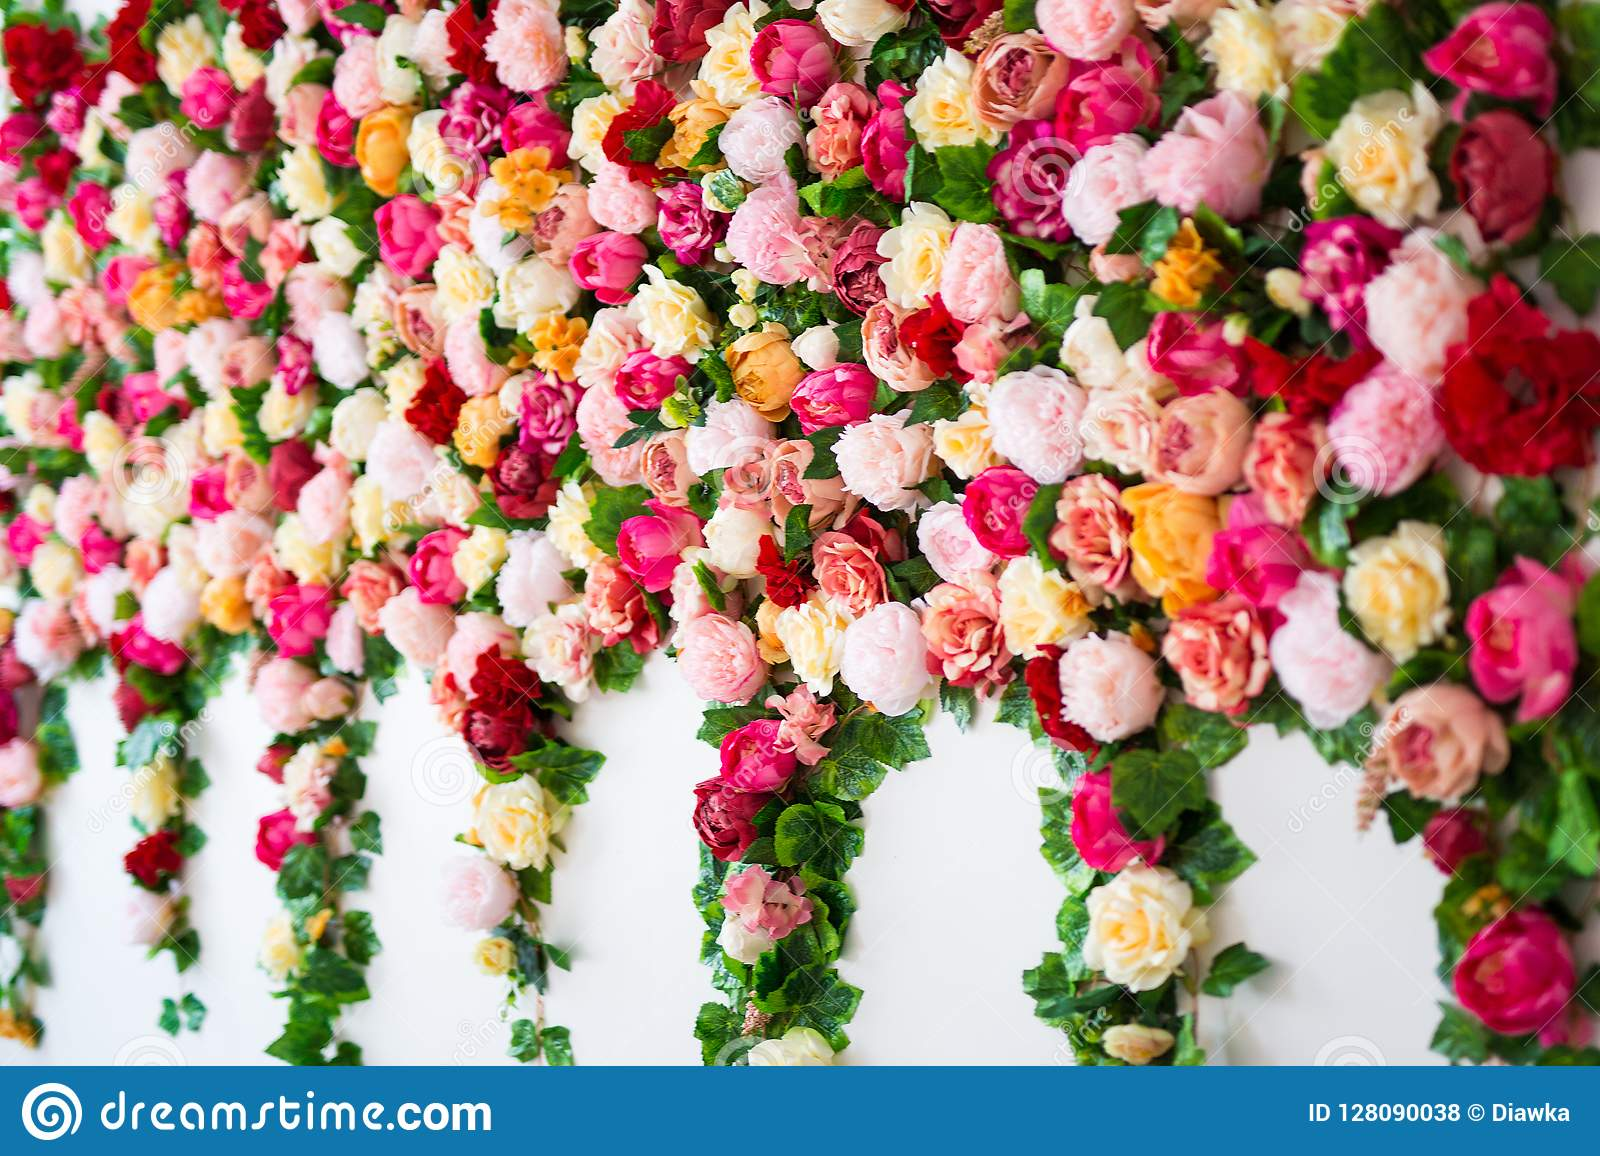 Wedding Decoration - Flowers Wall Background With Colorful Roses ...